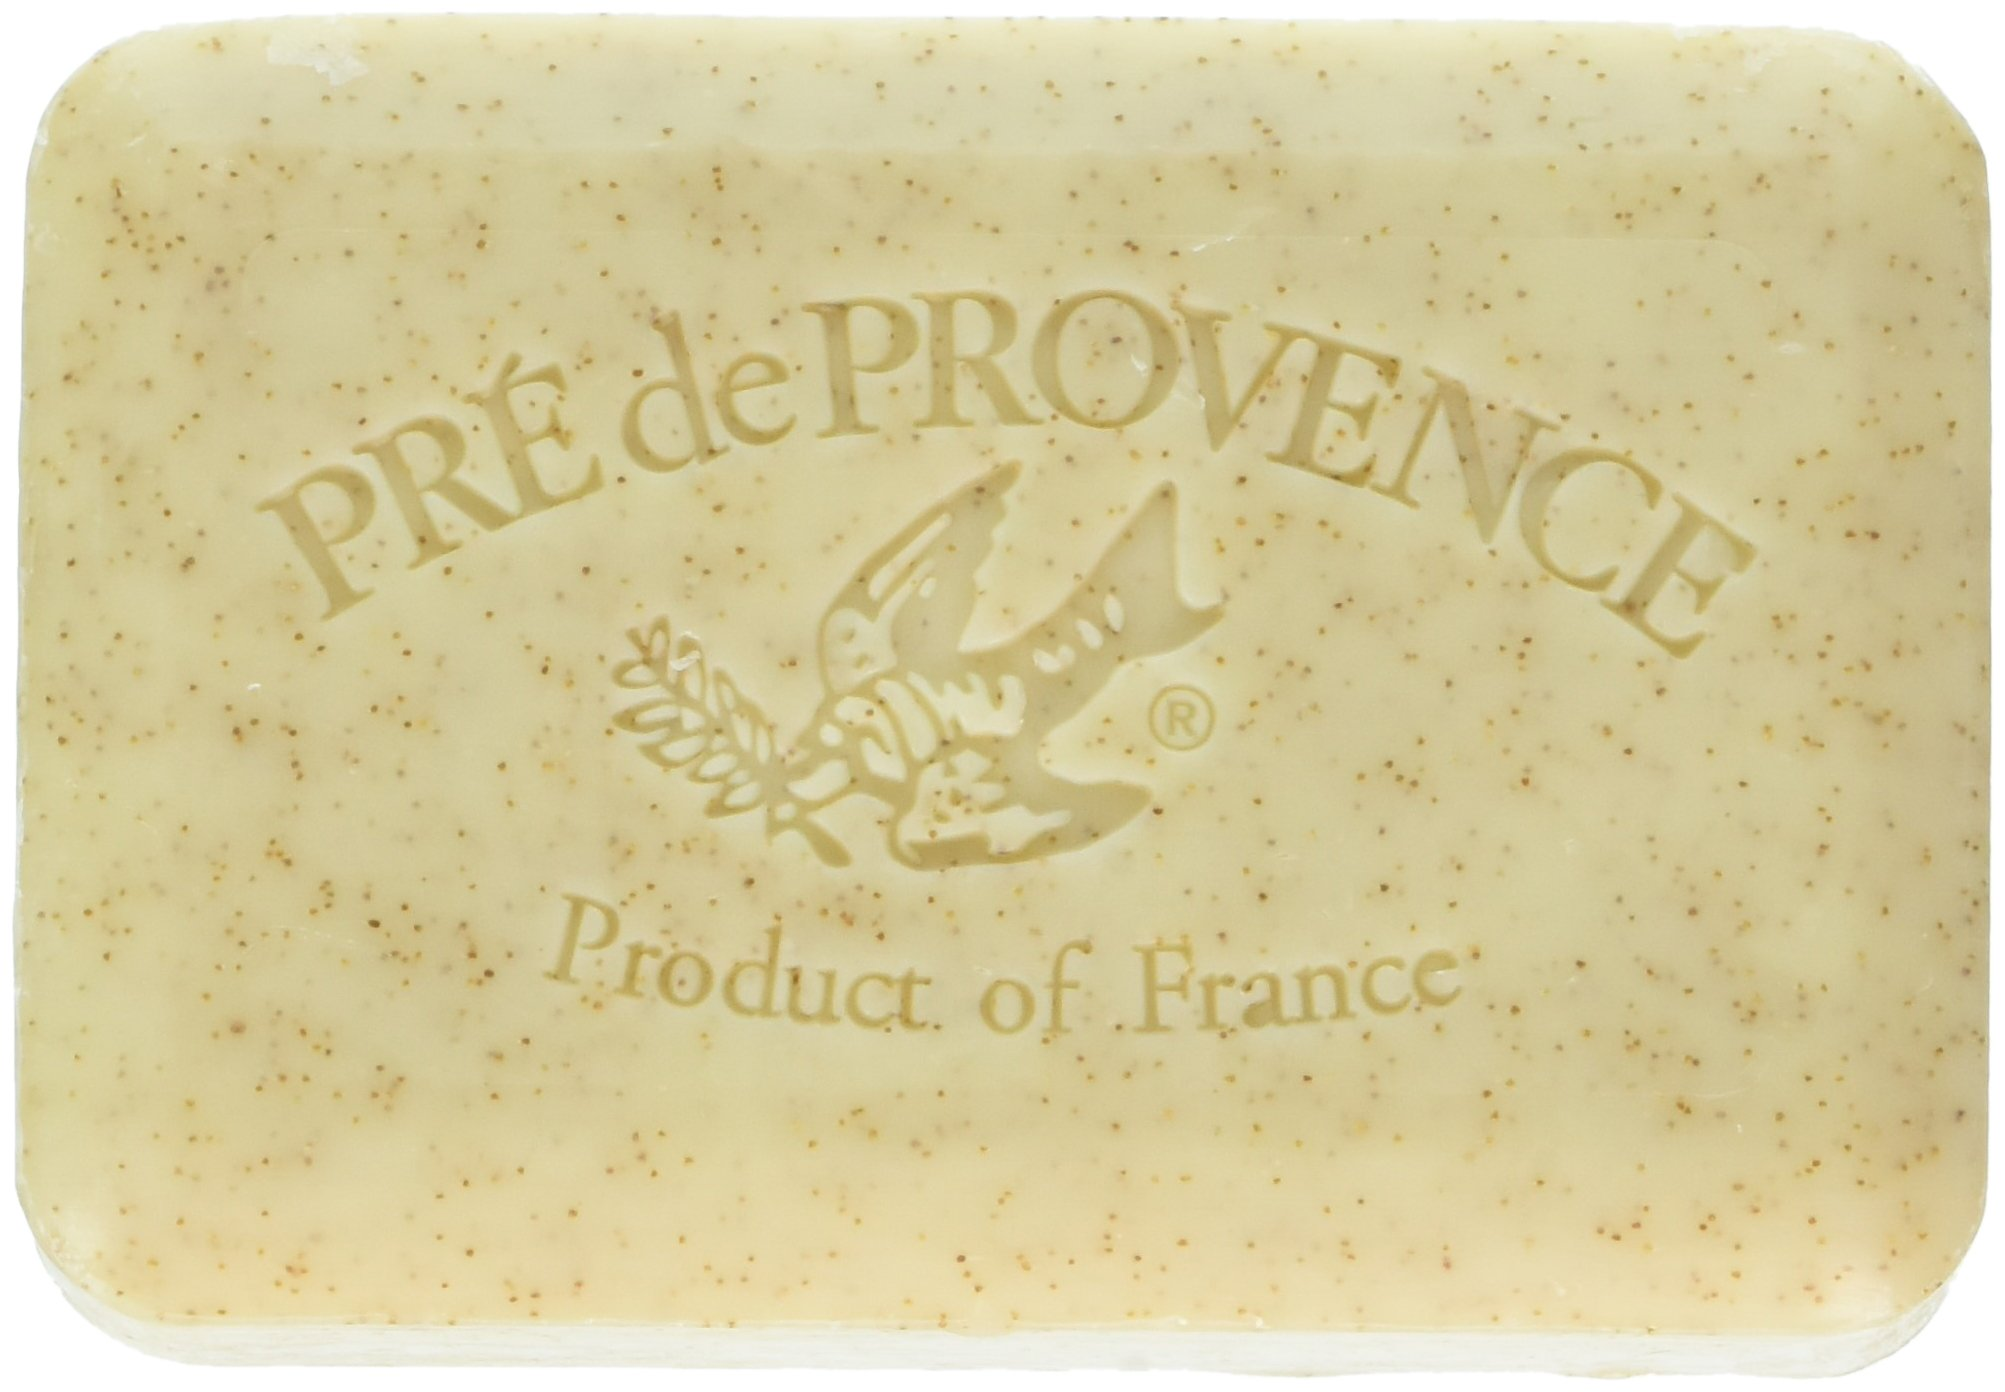 Pre de Provence Artisanal French Soap Bar Enriched with Shea Butter, Quad-Milled For A Smooth & Rich Lather (250 grams) - Honey Almond